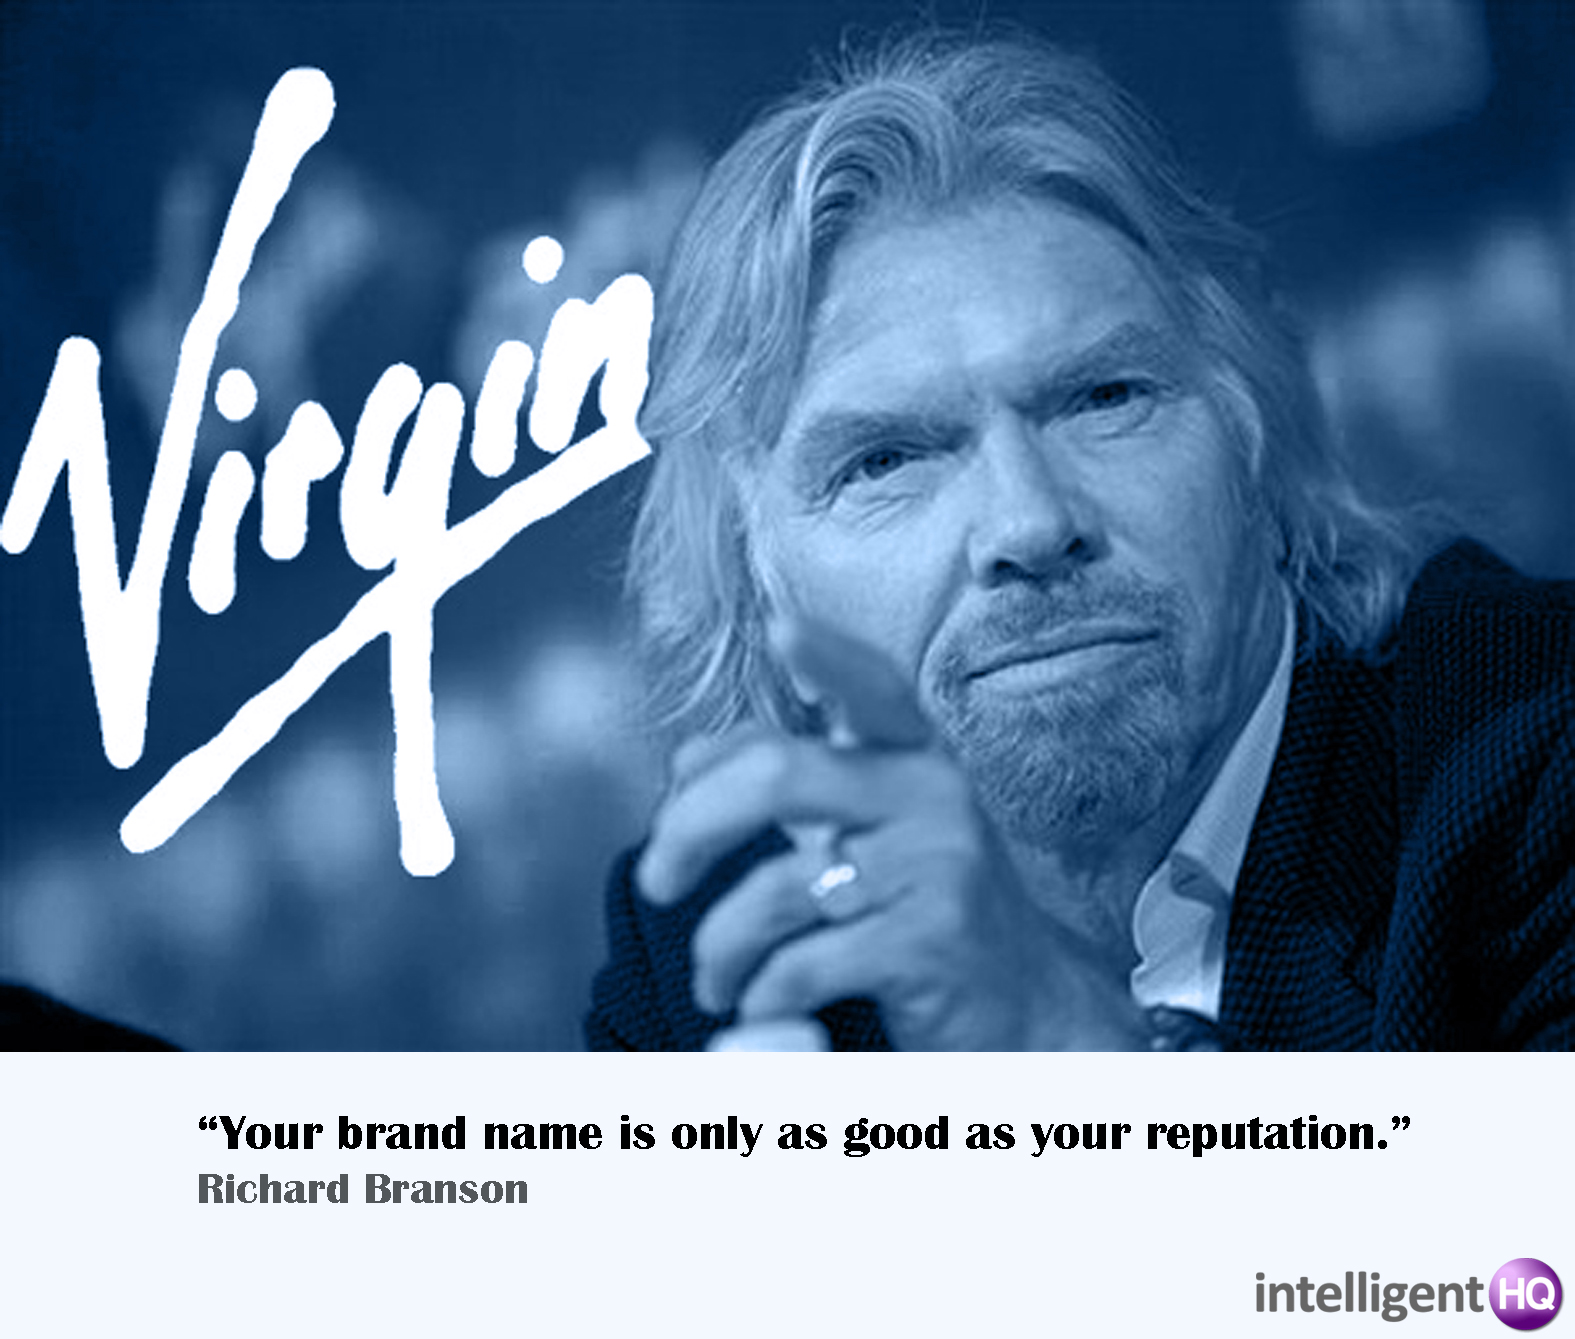 Quote By Richard Branson. Intelligenthq